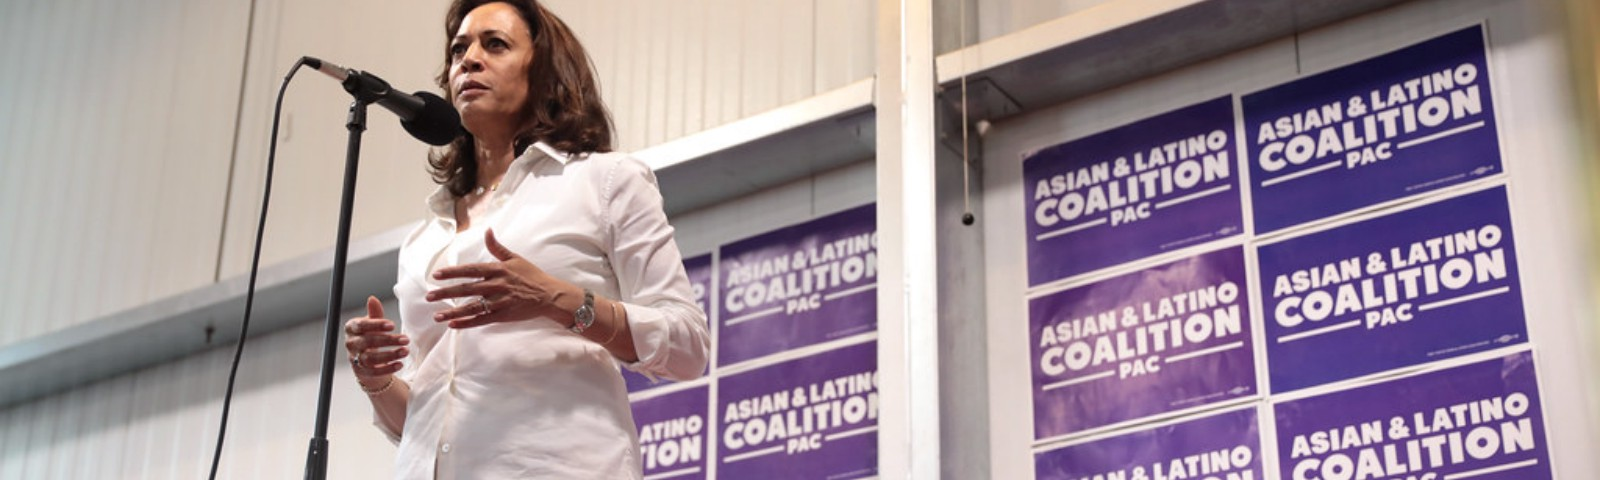 Kamala Harris speaking at a convention